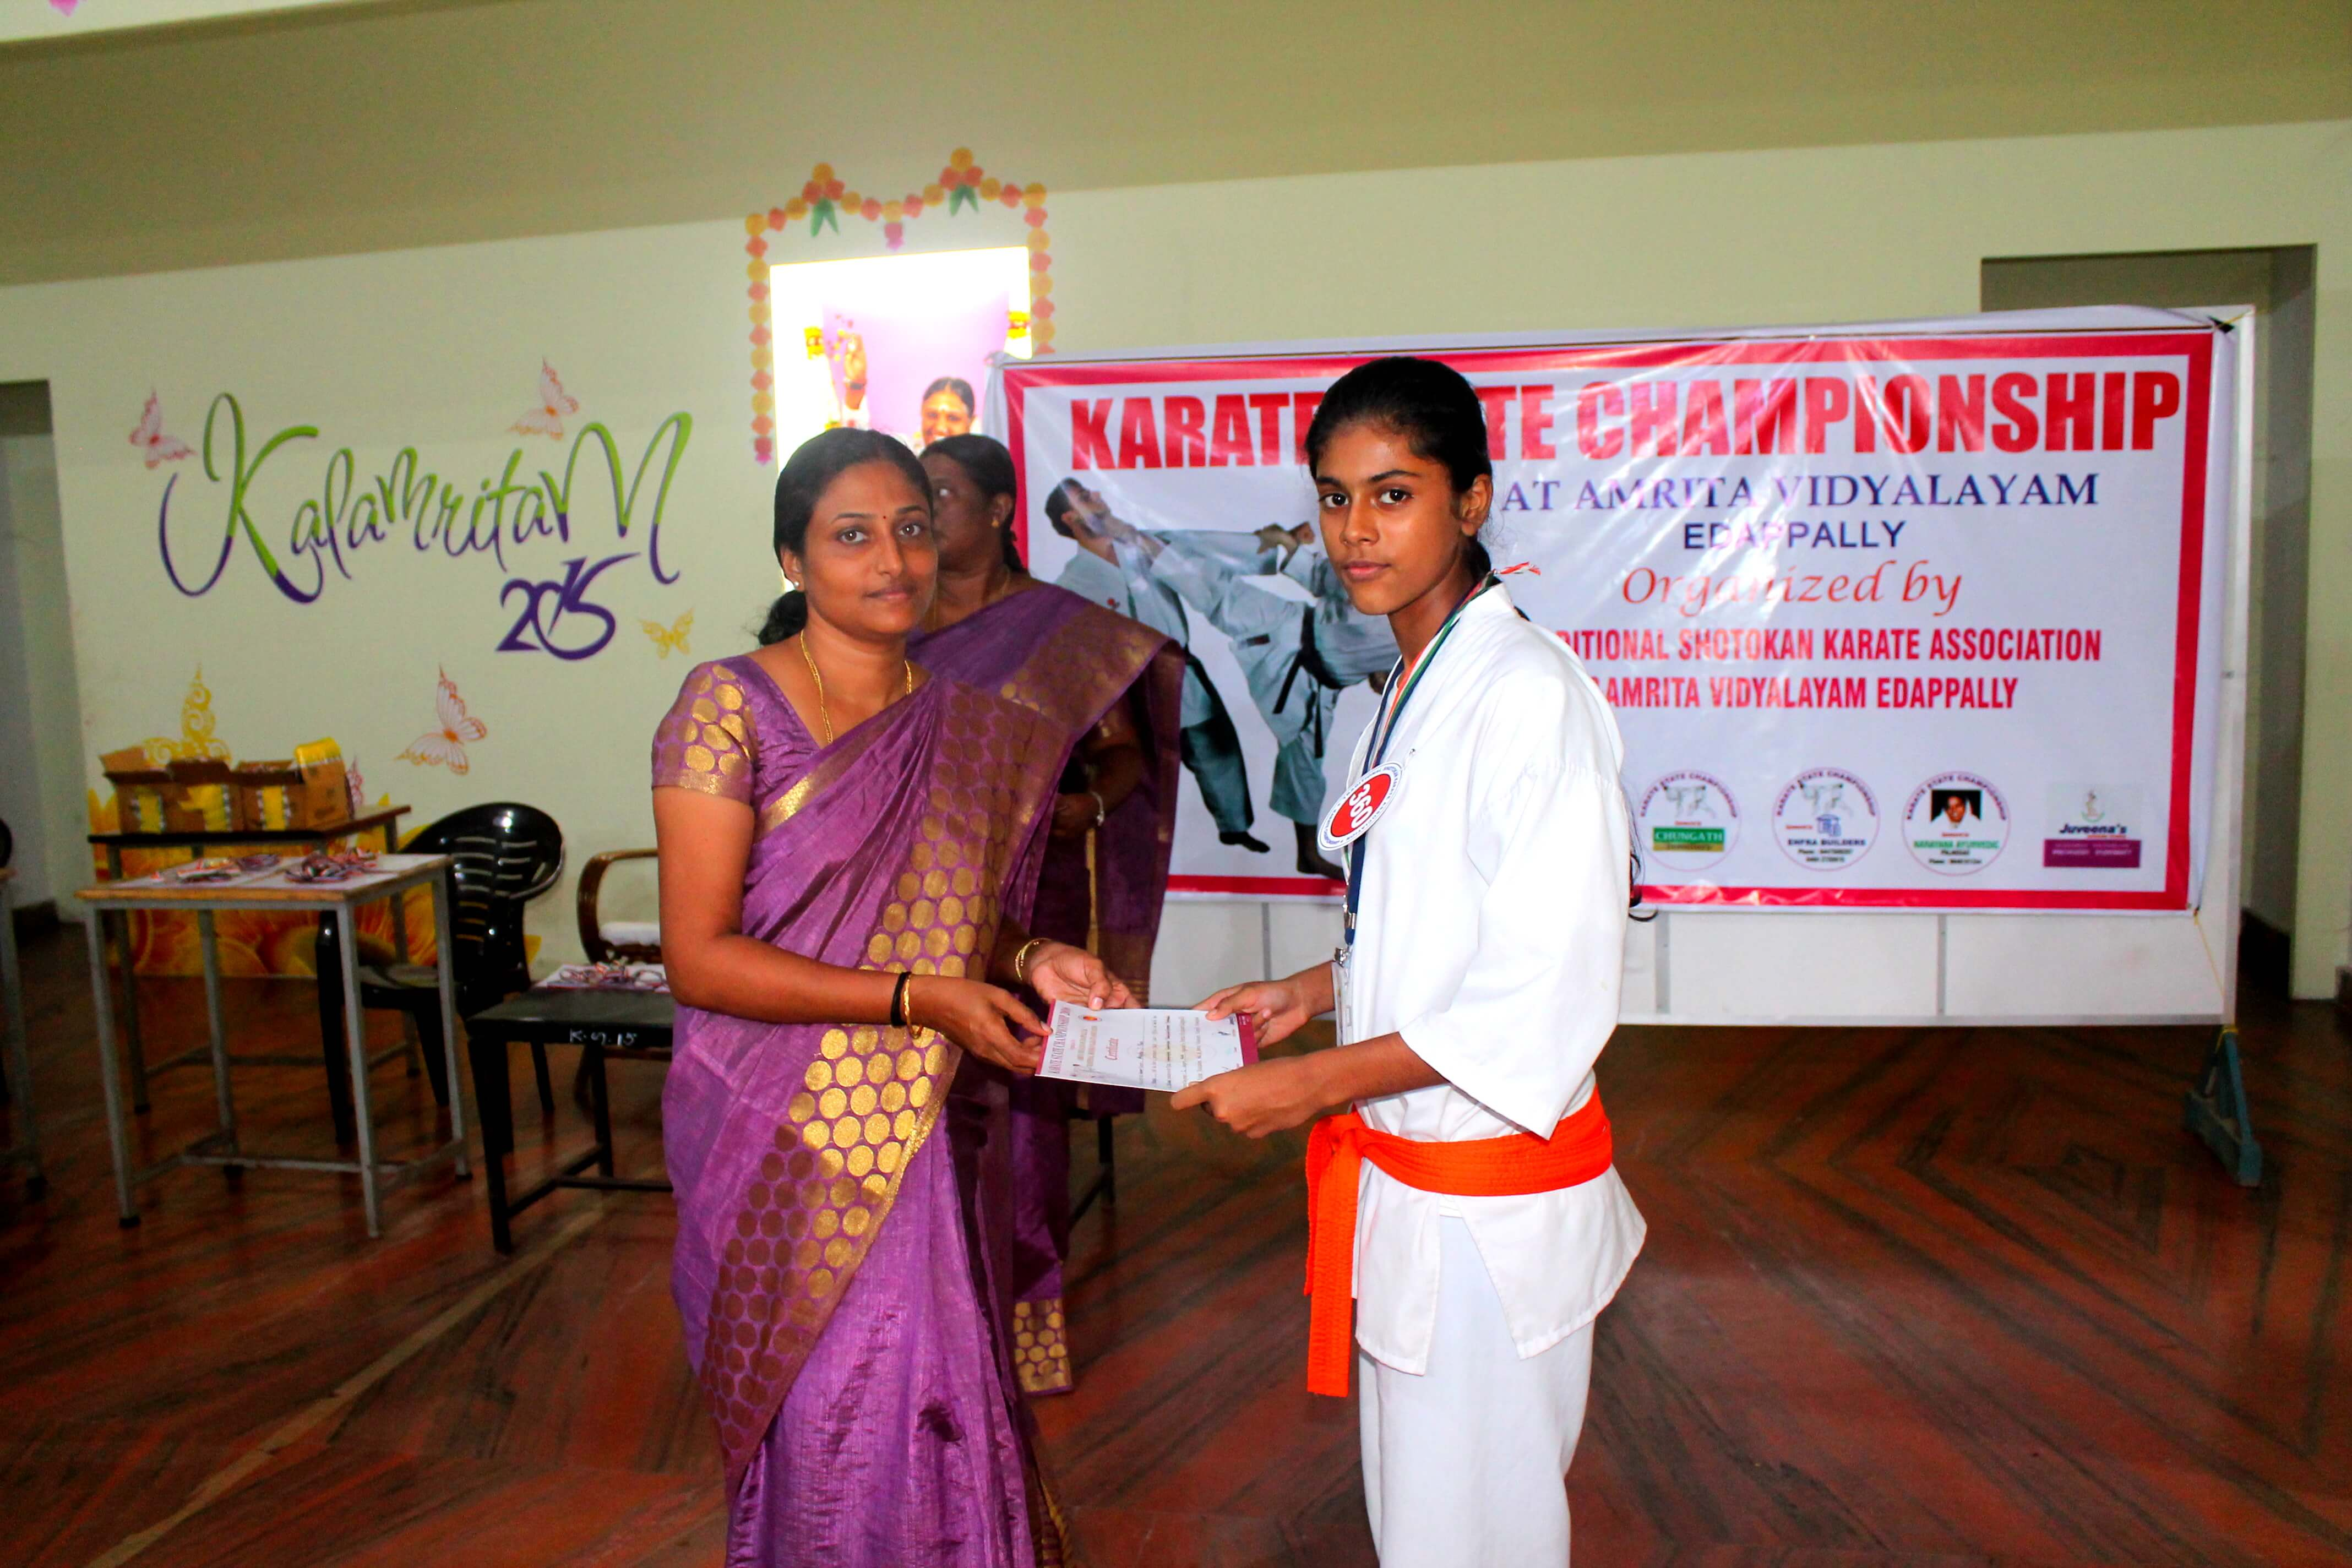 Anagha S Nair, Kata Second - Senior Girls